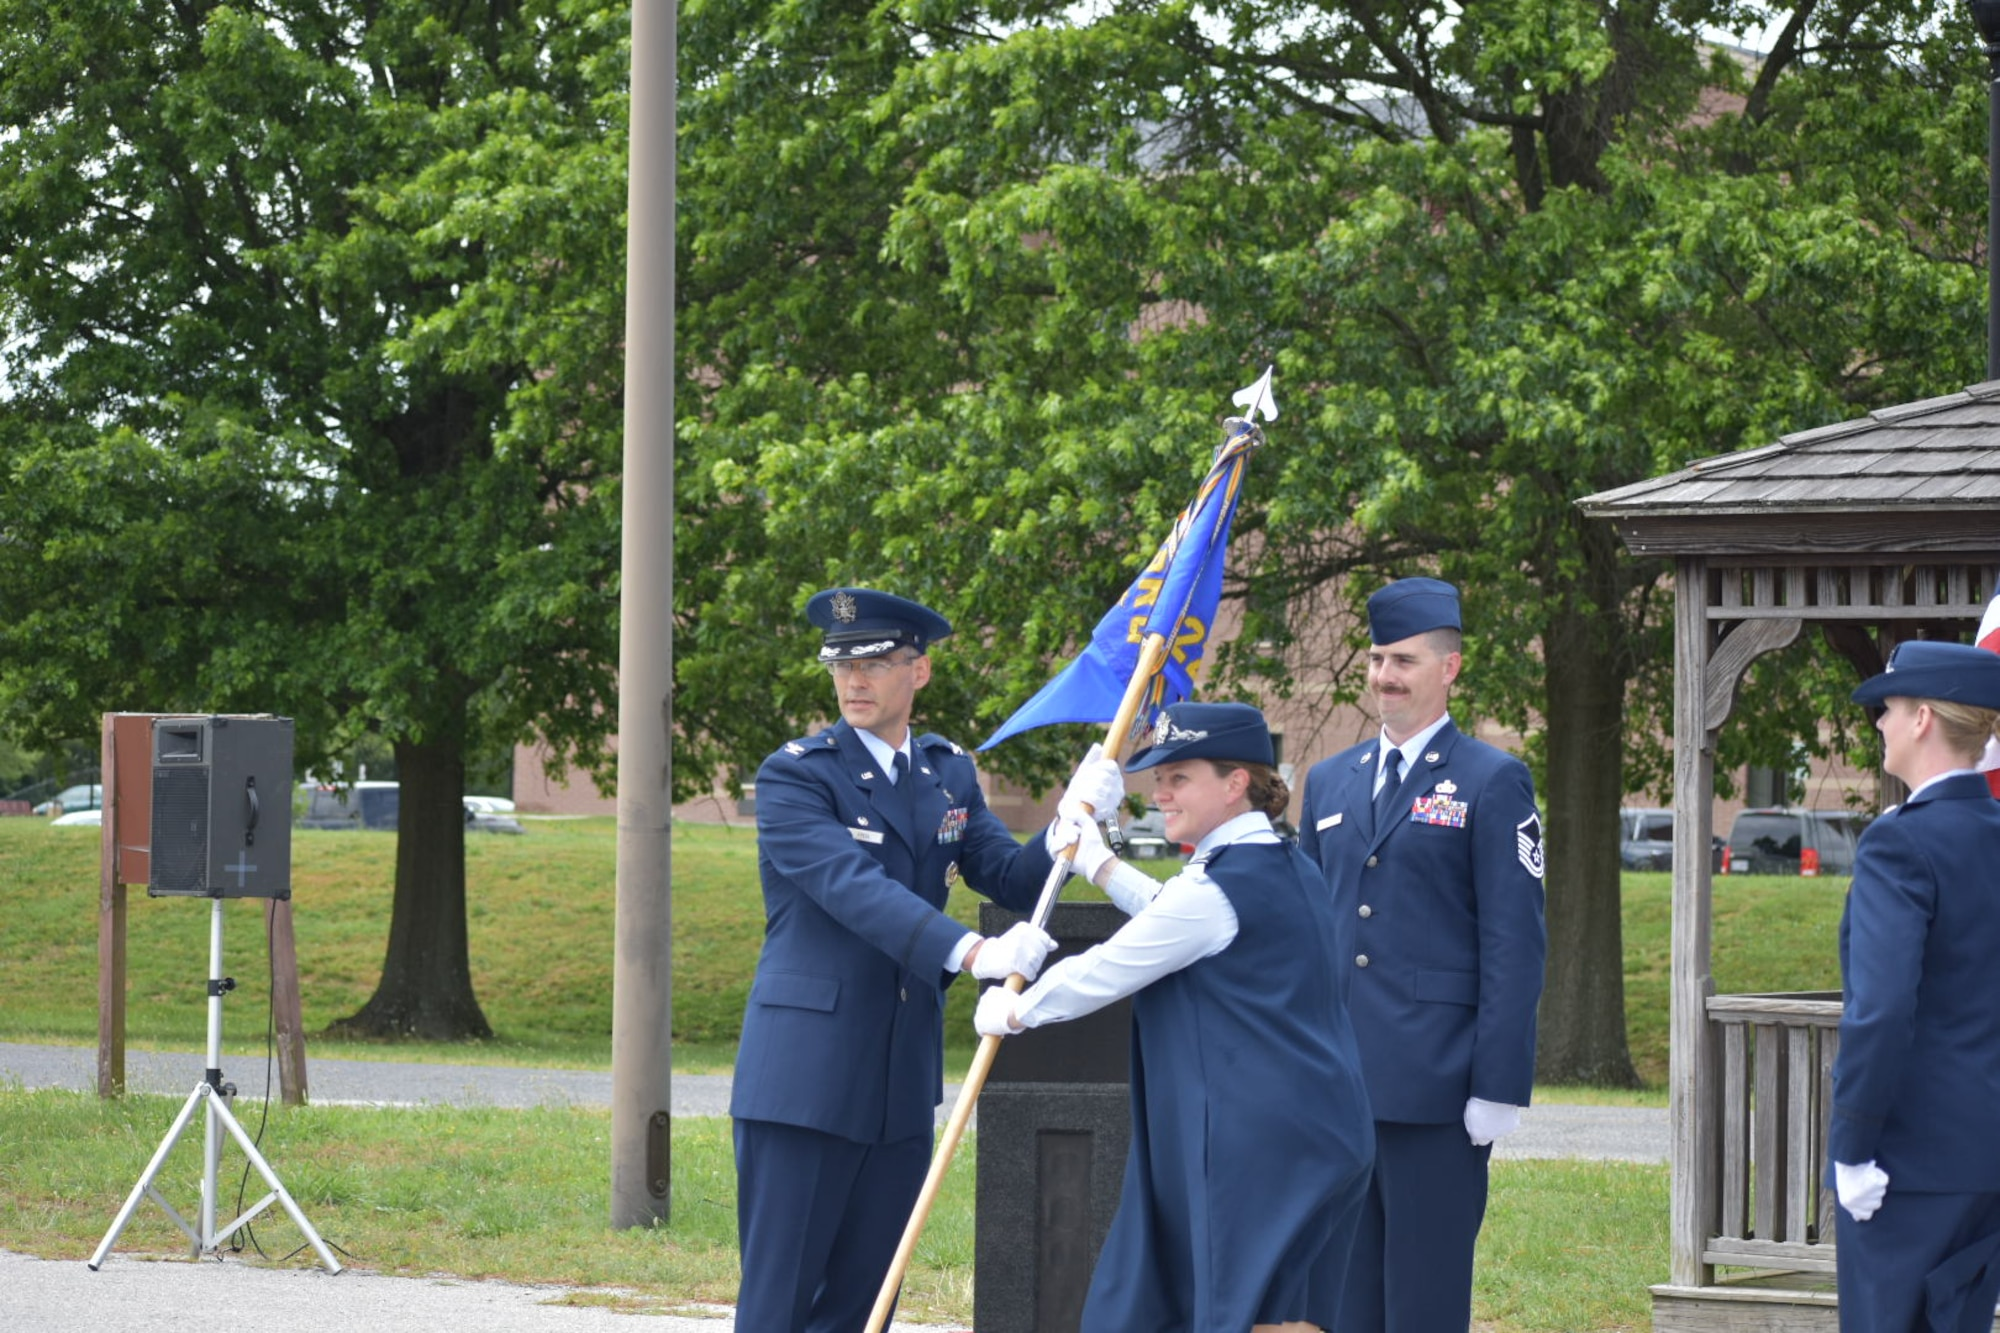 Lt. Col. Hallie Herrera takes command of the 22nd Intelligence Squadron from Col. Charles Freel, commander of the 691st Intelligence Surveillance and Reconnaissance Group in a ceremony at Fort George G. Meade, Md., June 16, 2020. (U.S. Air Force courtesy photo by Felix Herrera)